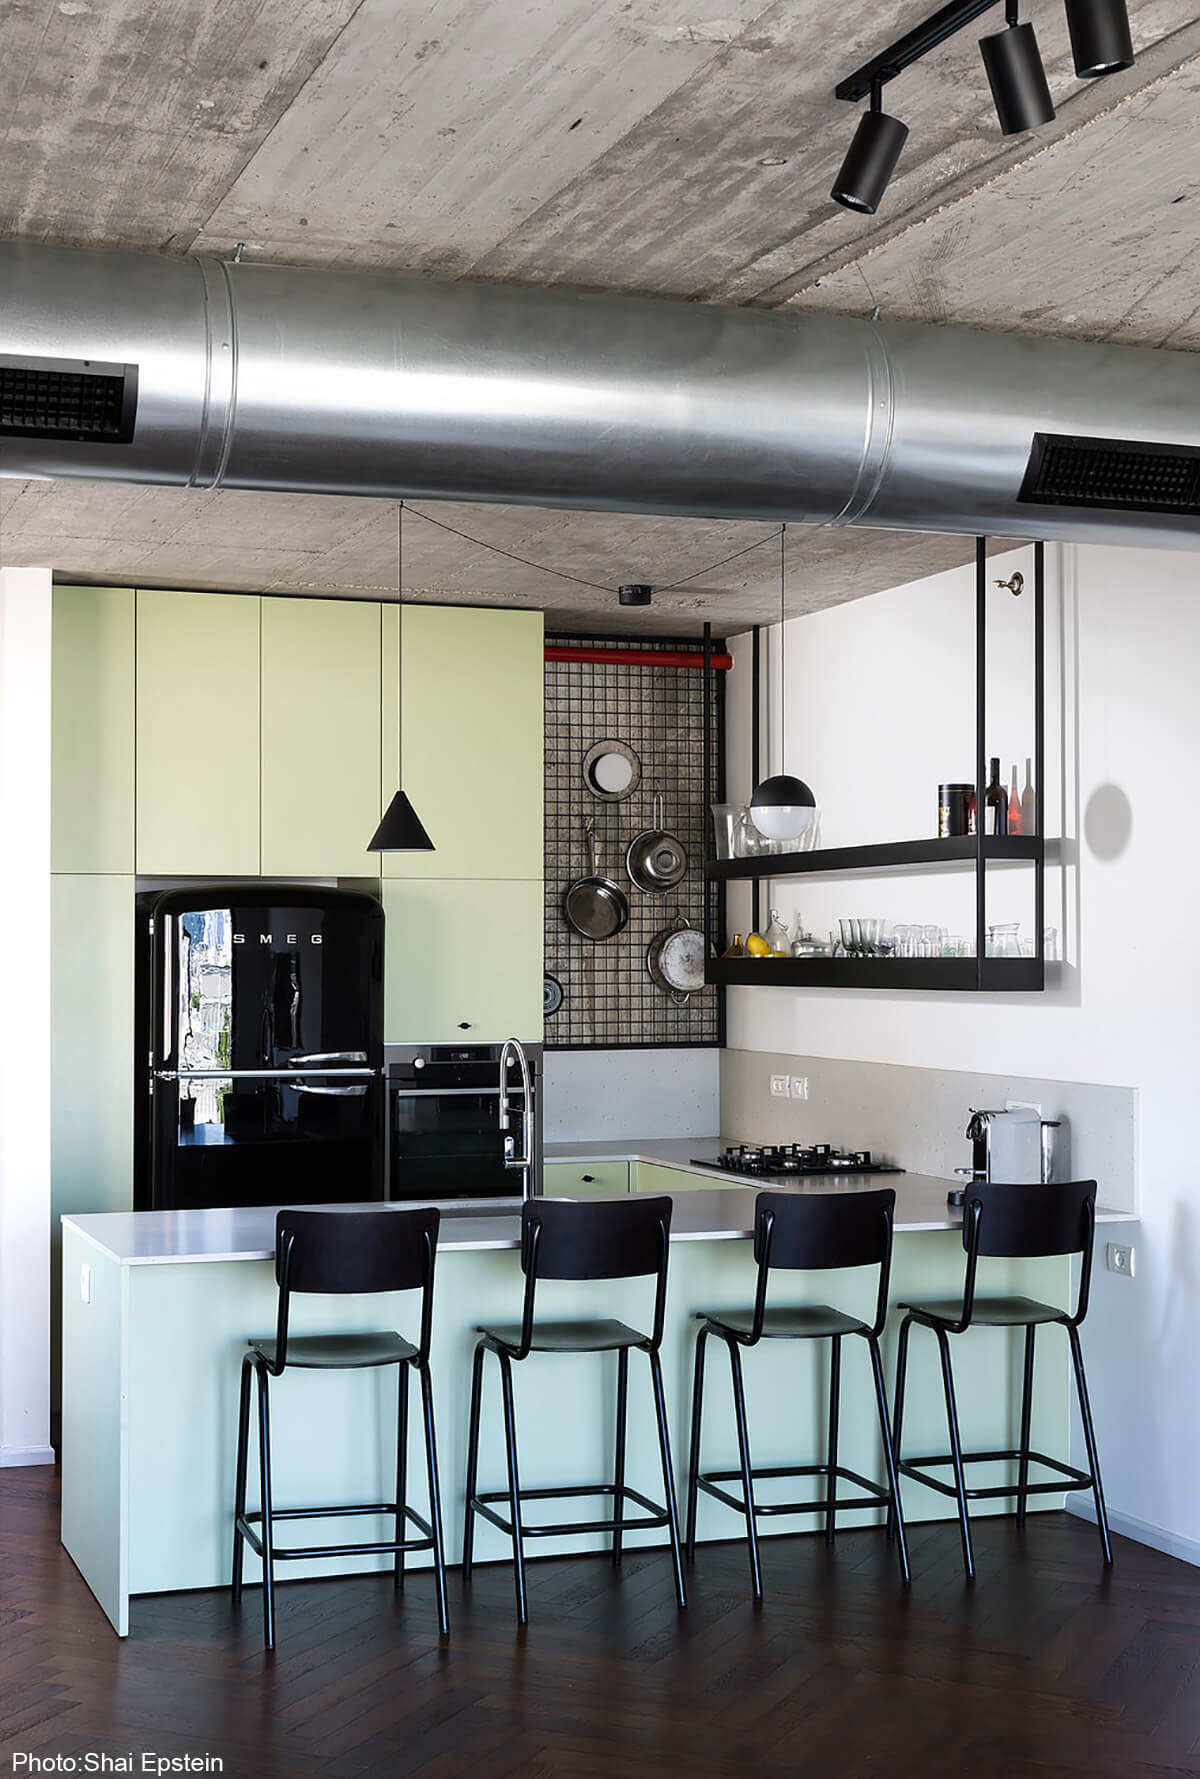 Kitchen Inspiration for Your Renovating Ideas